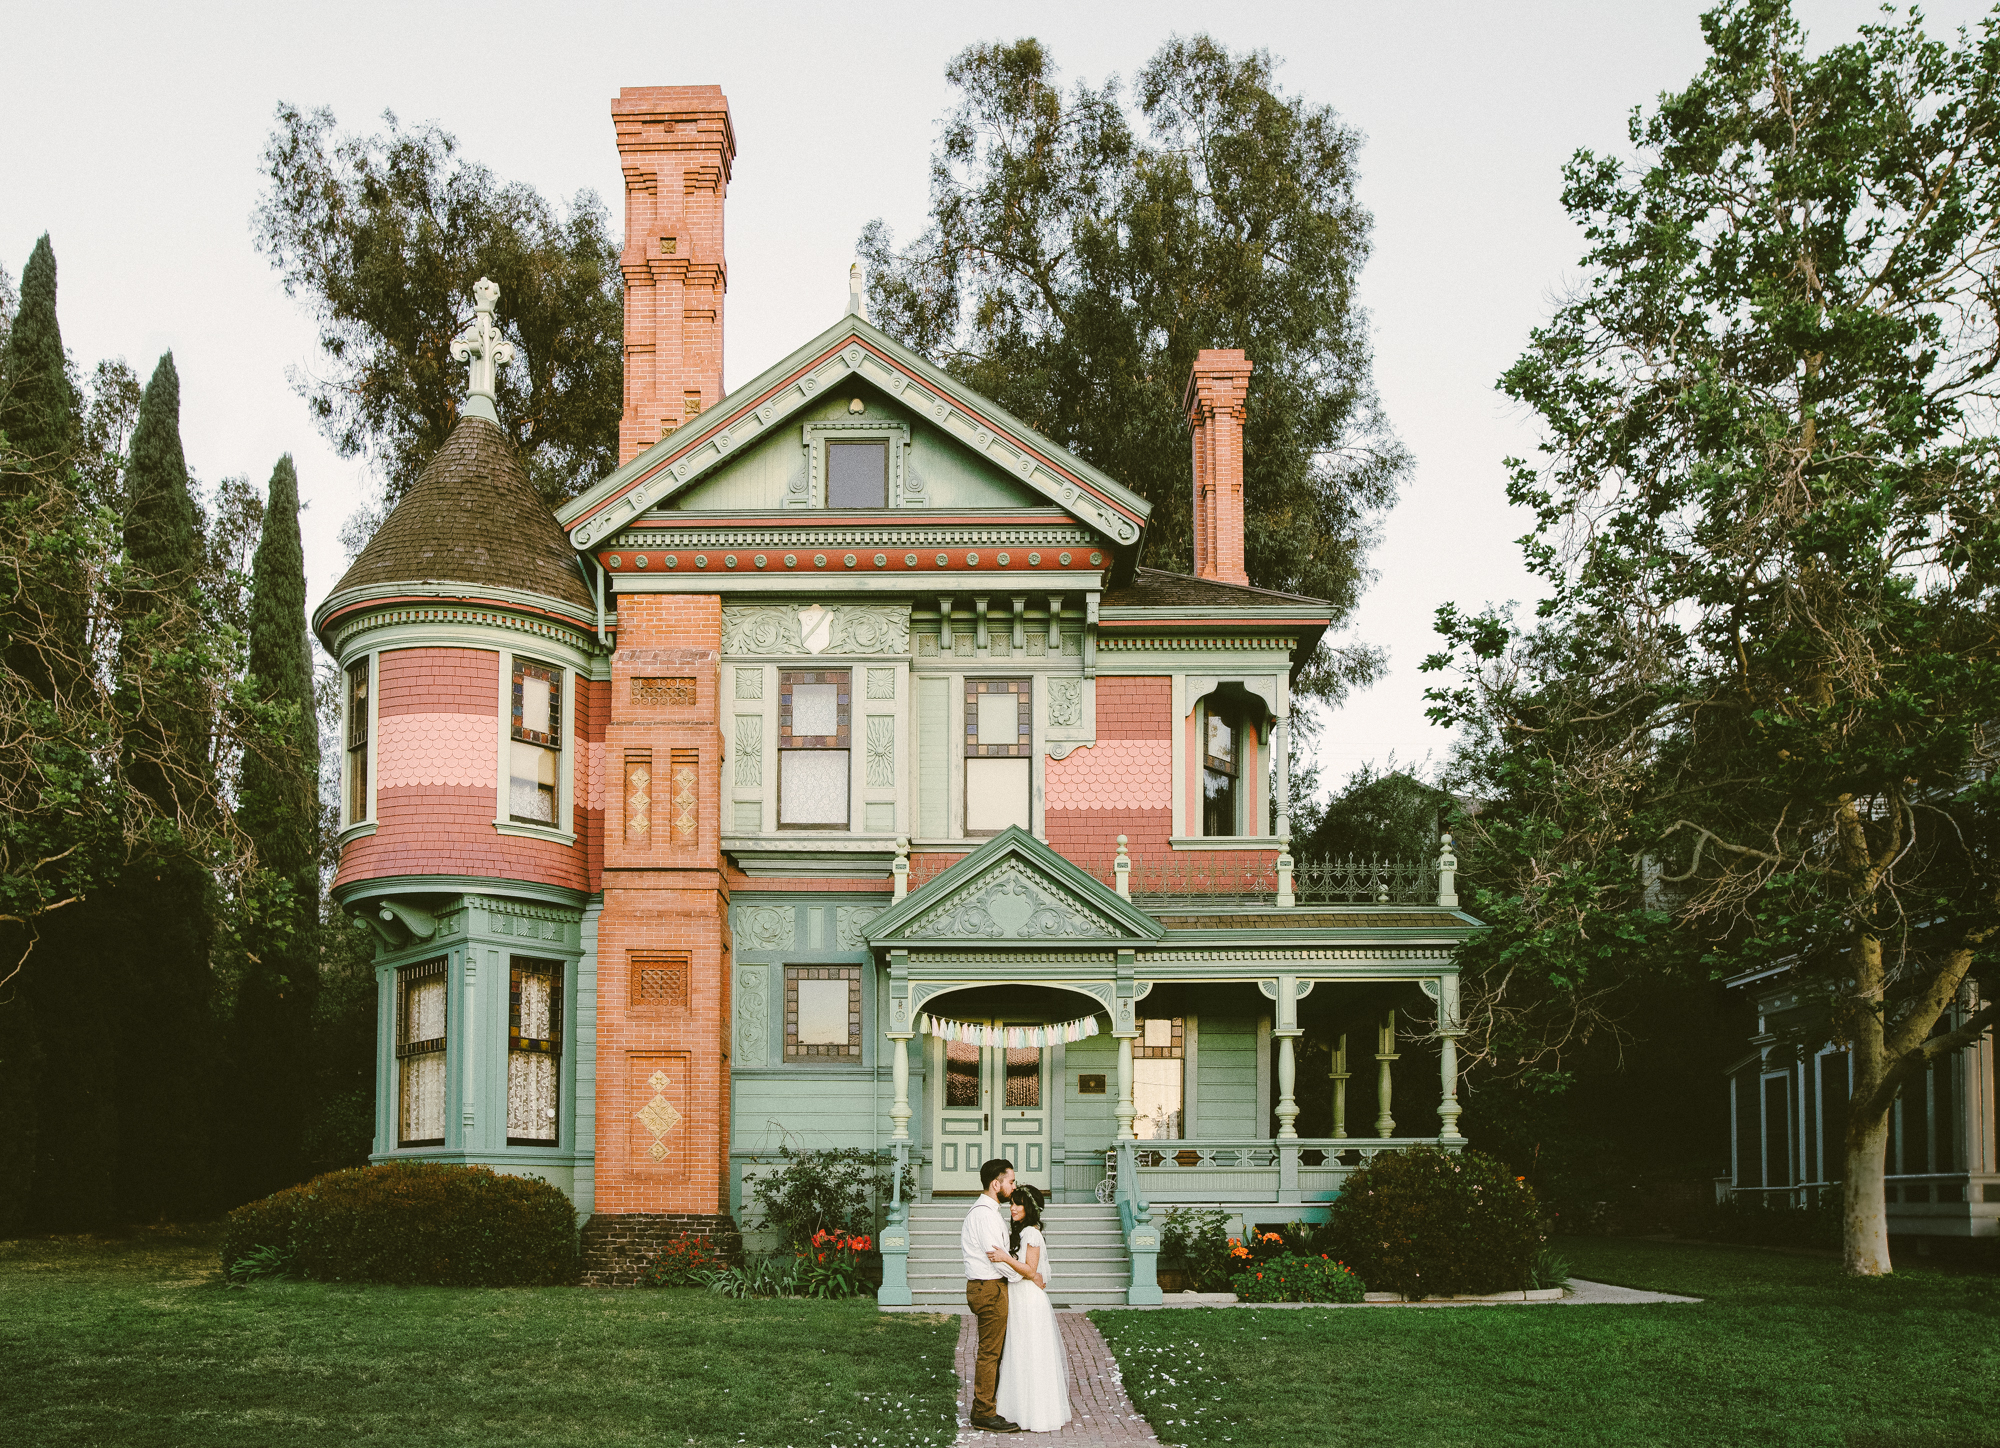 Isaiah & Taylor Photography - Los Angeles - Destination Wedding Photographers - Heritage Square Museum -73.jpg